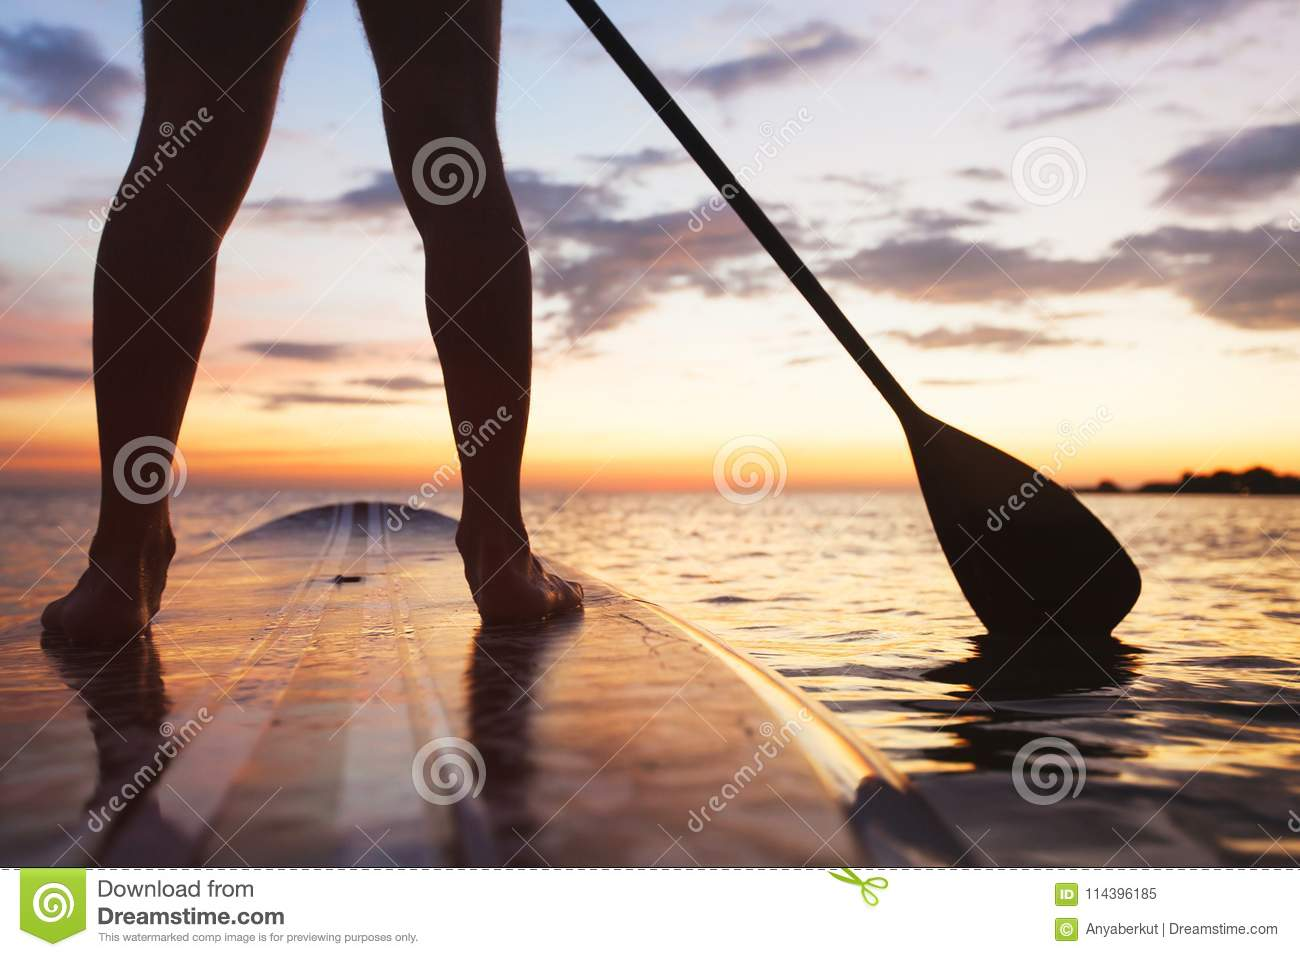 Sup, stand up paddle board in sea